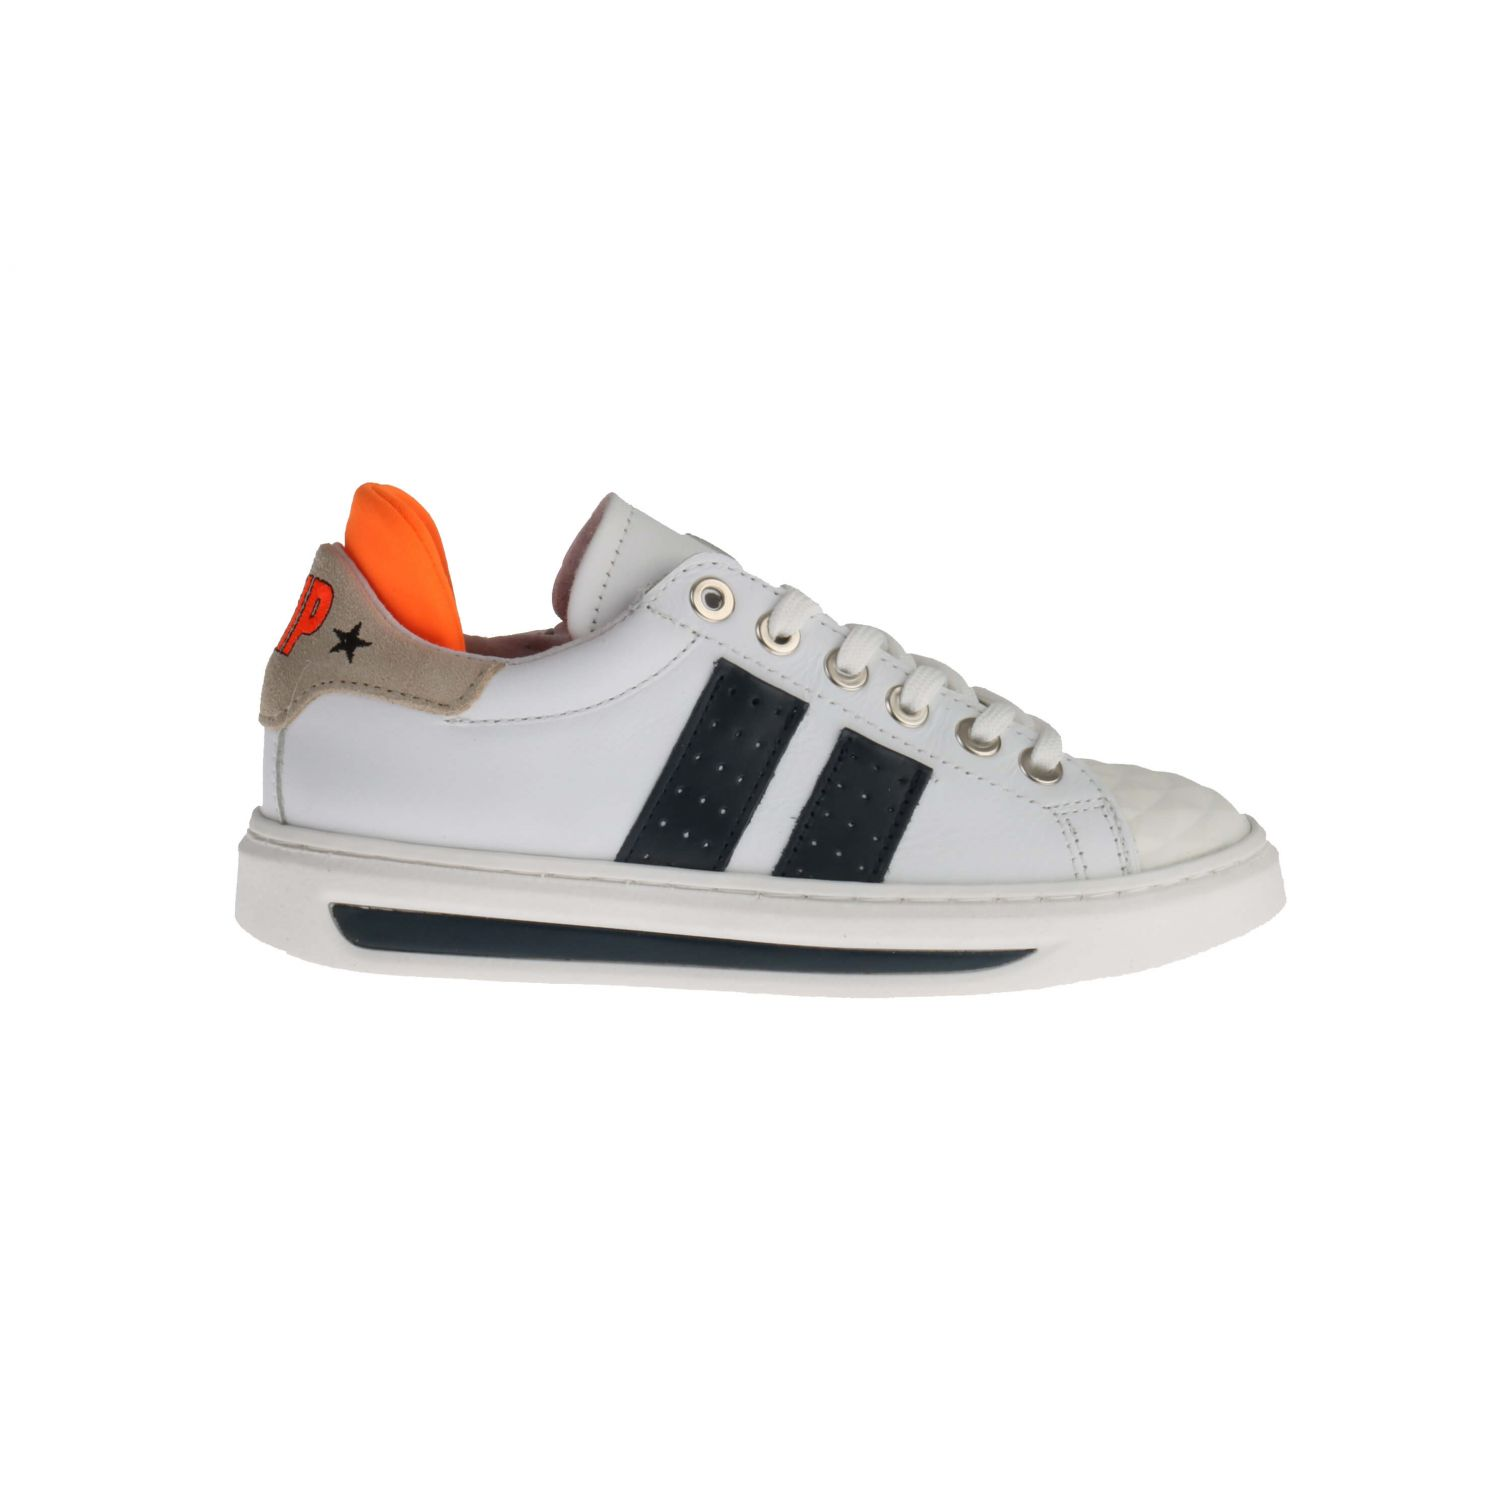 HIP H1887 Sneakers Wit Blauw